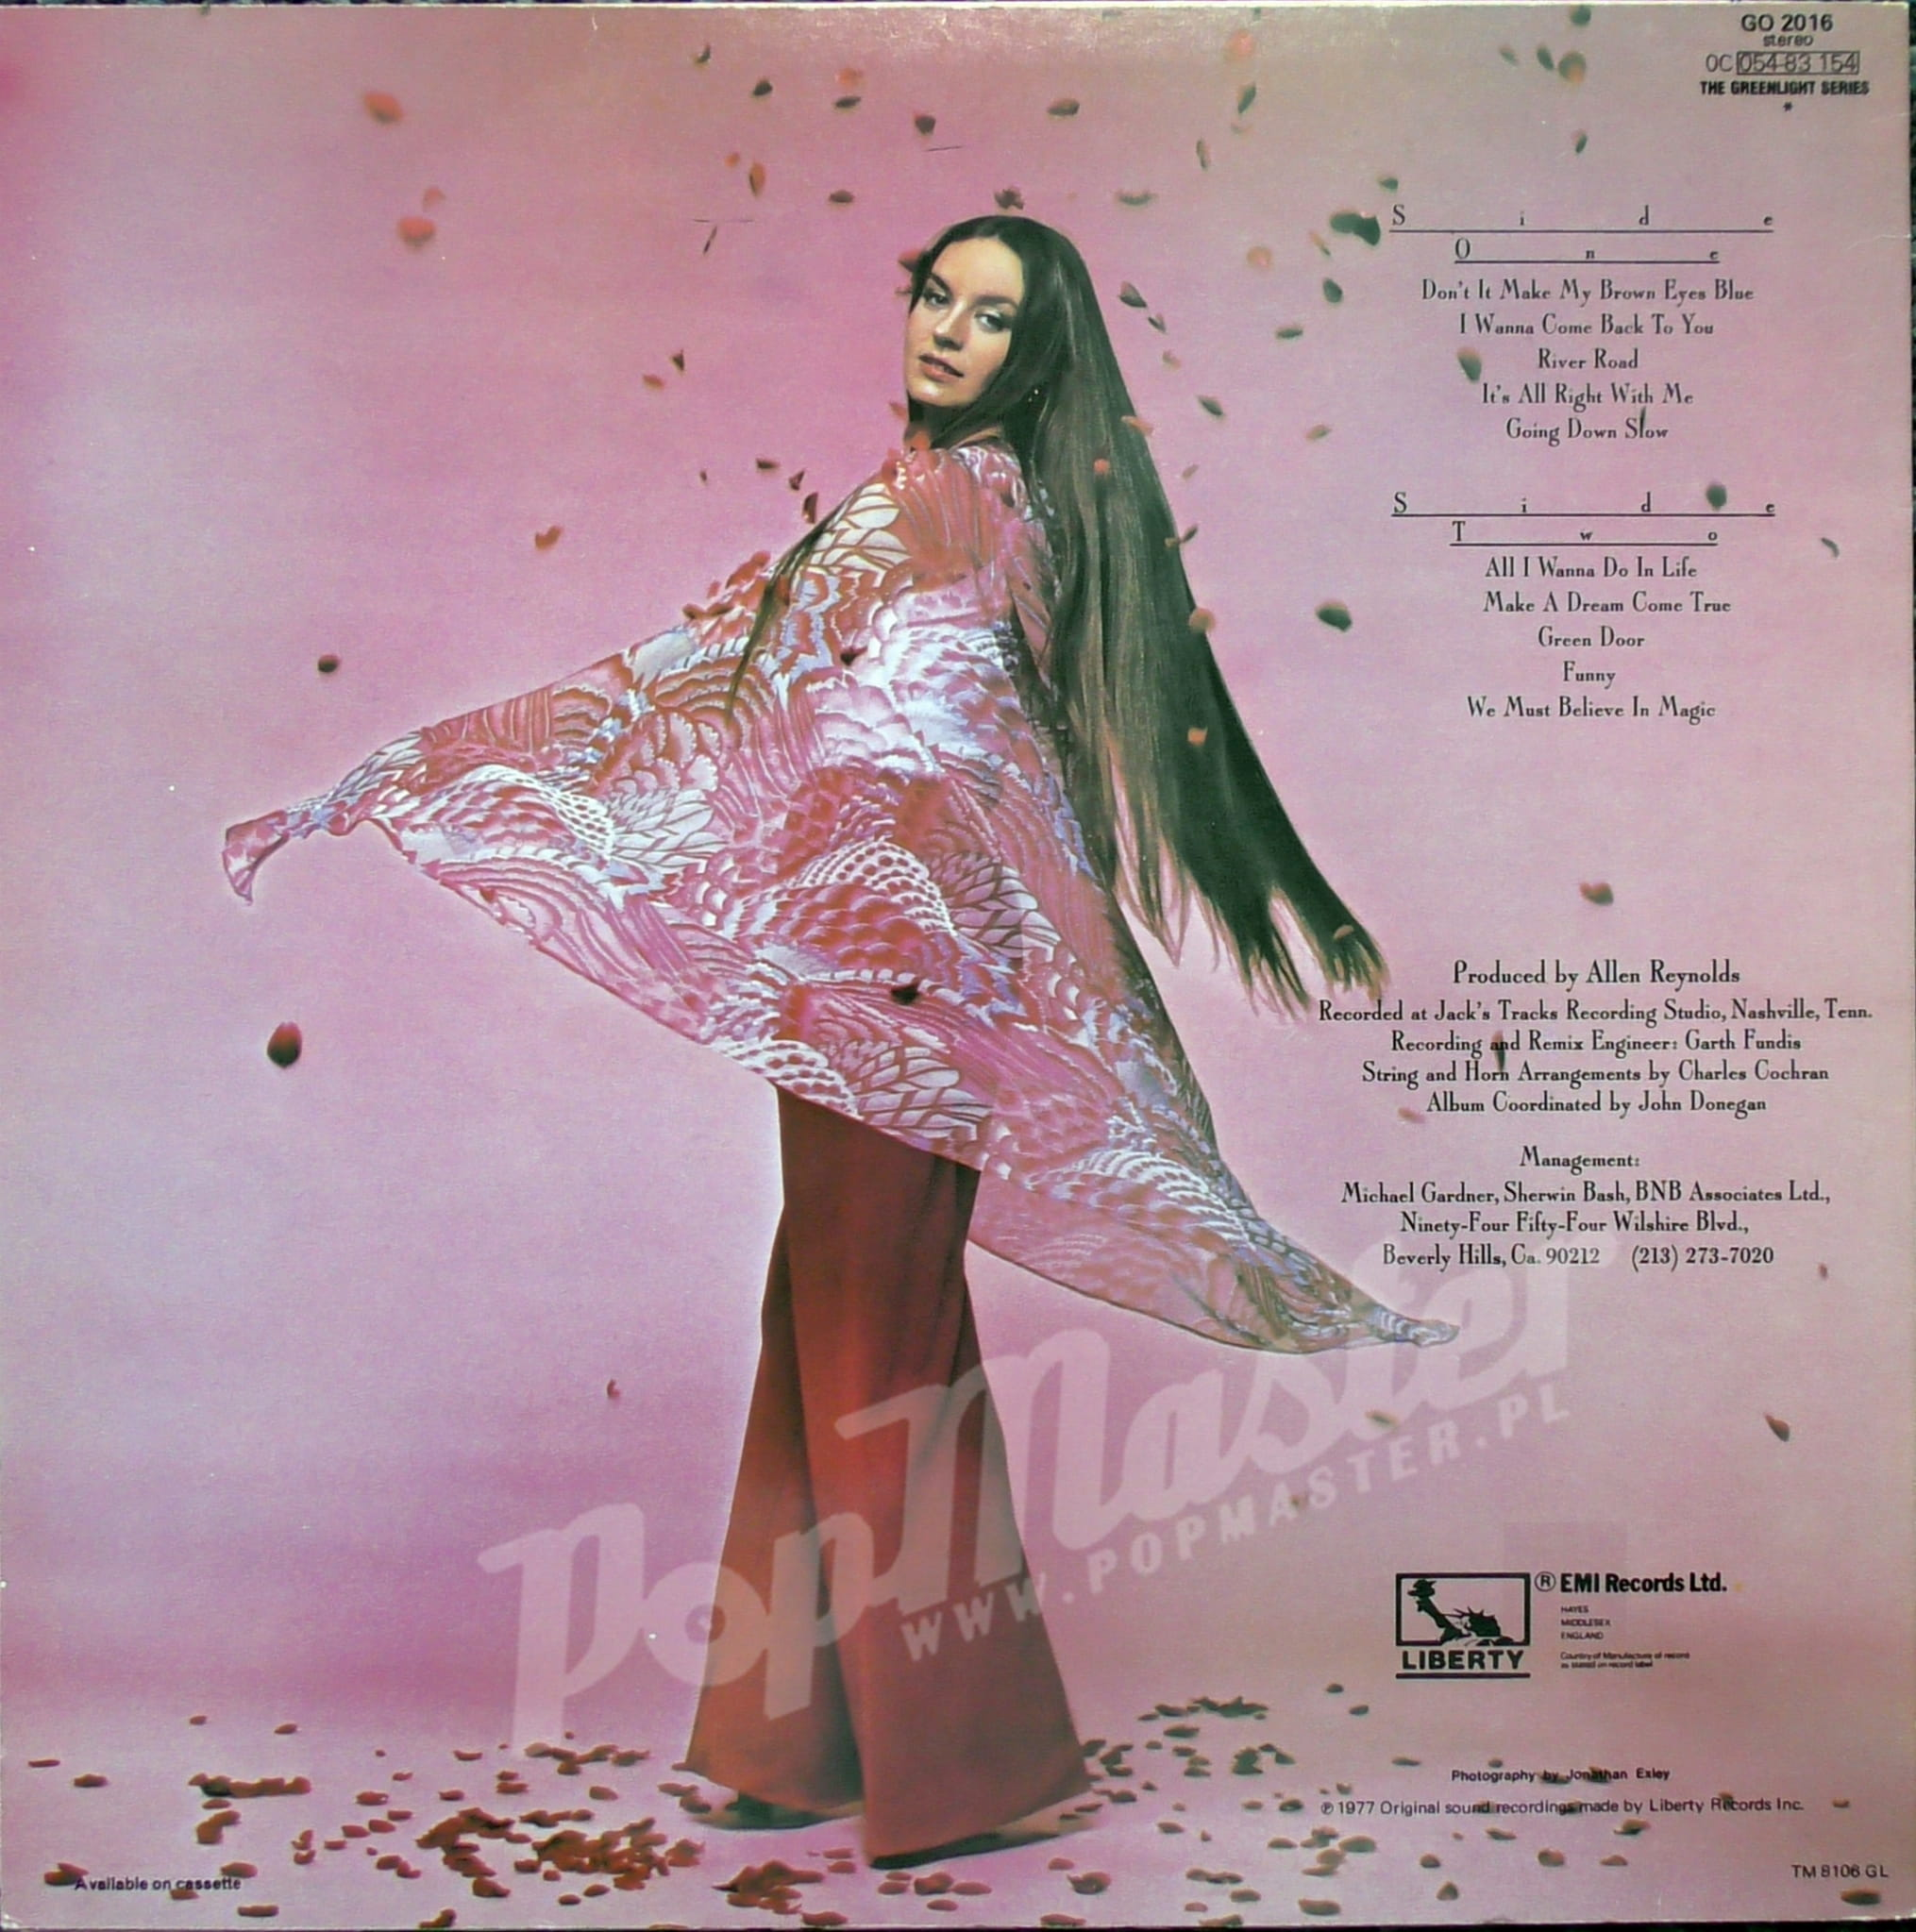 Crystal Gayle We Must Believe In Magic Go 2016 Record